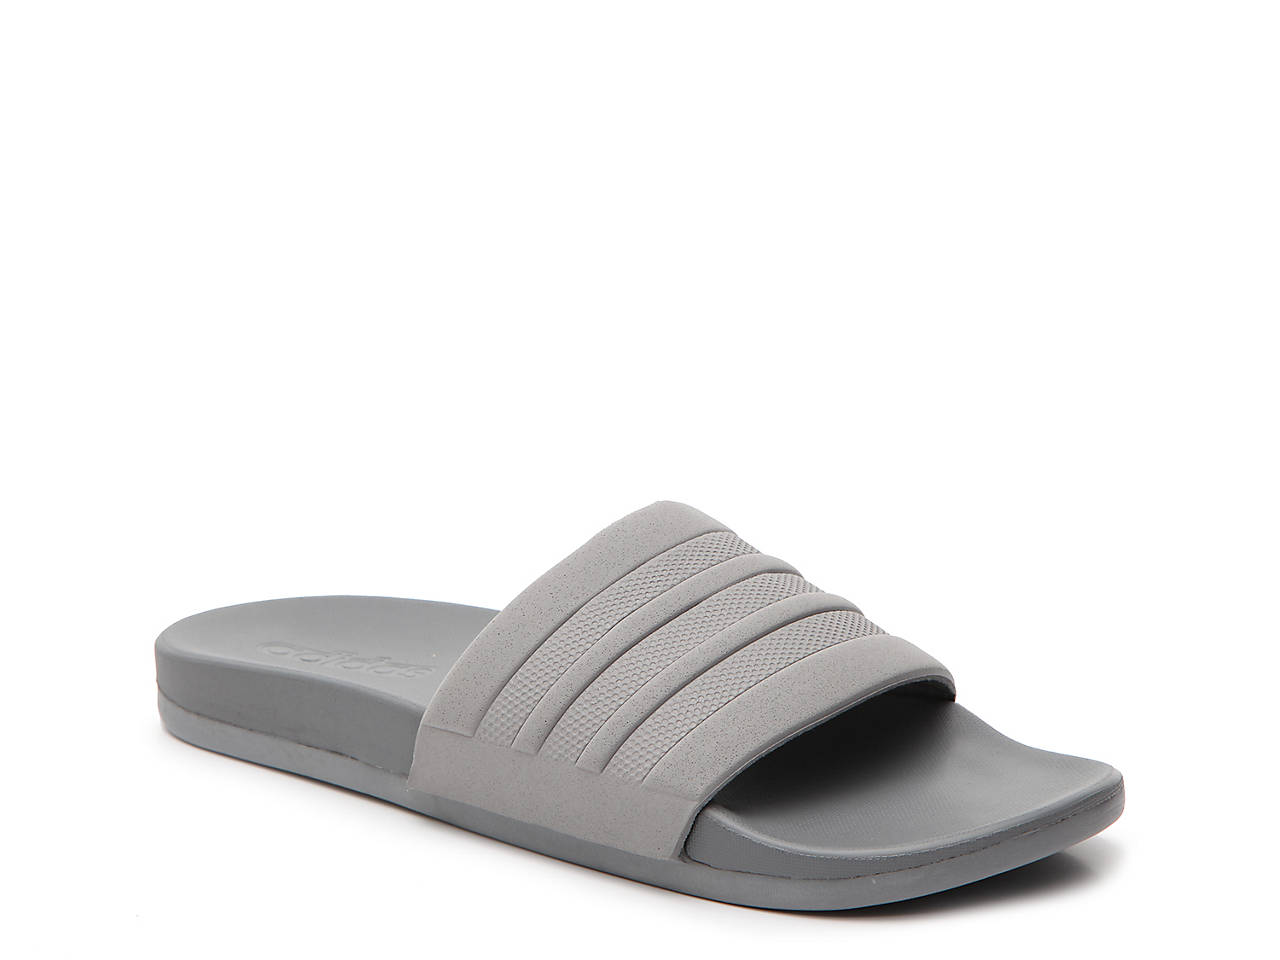 c34dc272a06a35 adidas Adilette Comfort Slide Sandals - Women s Women s Shoes